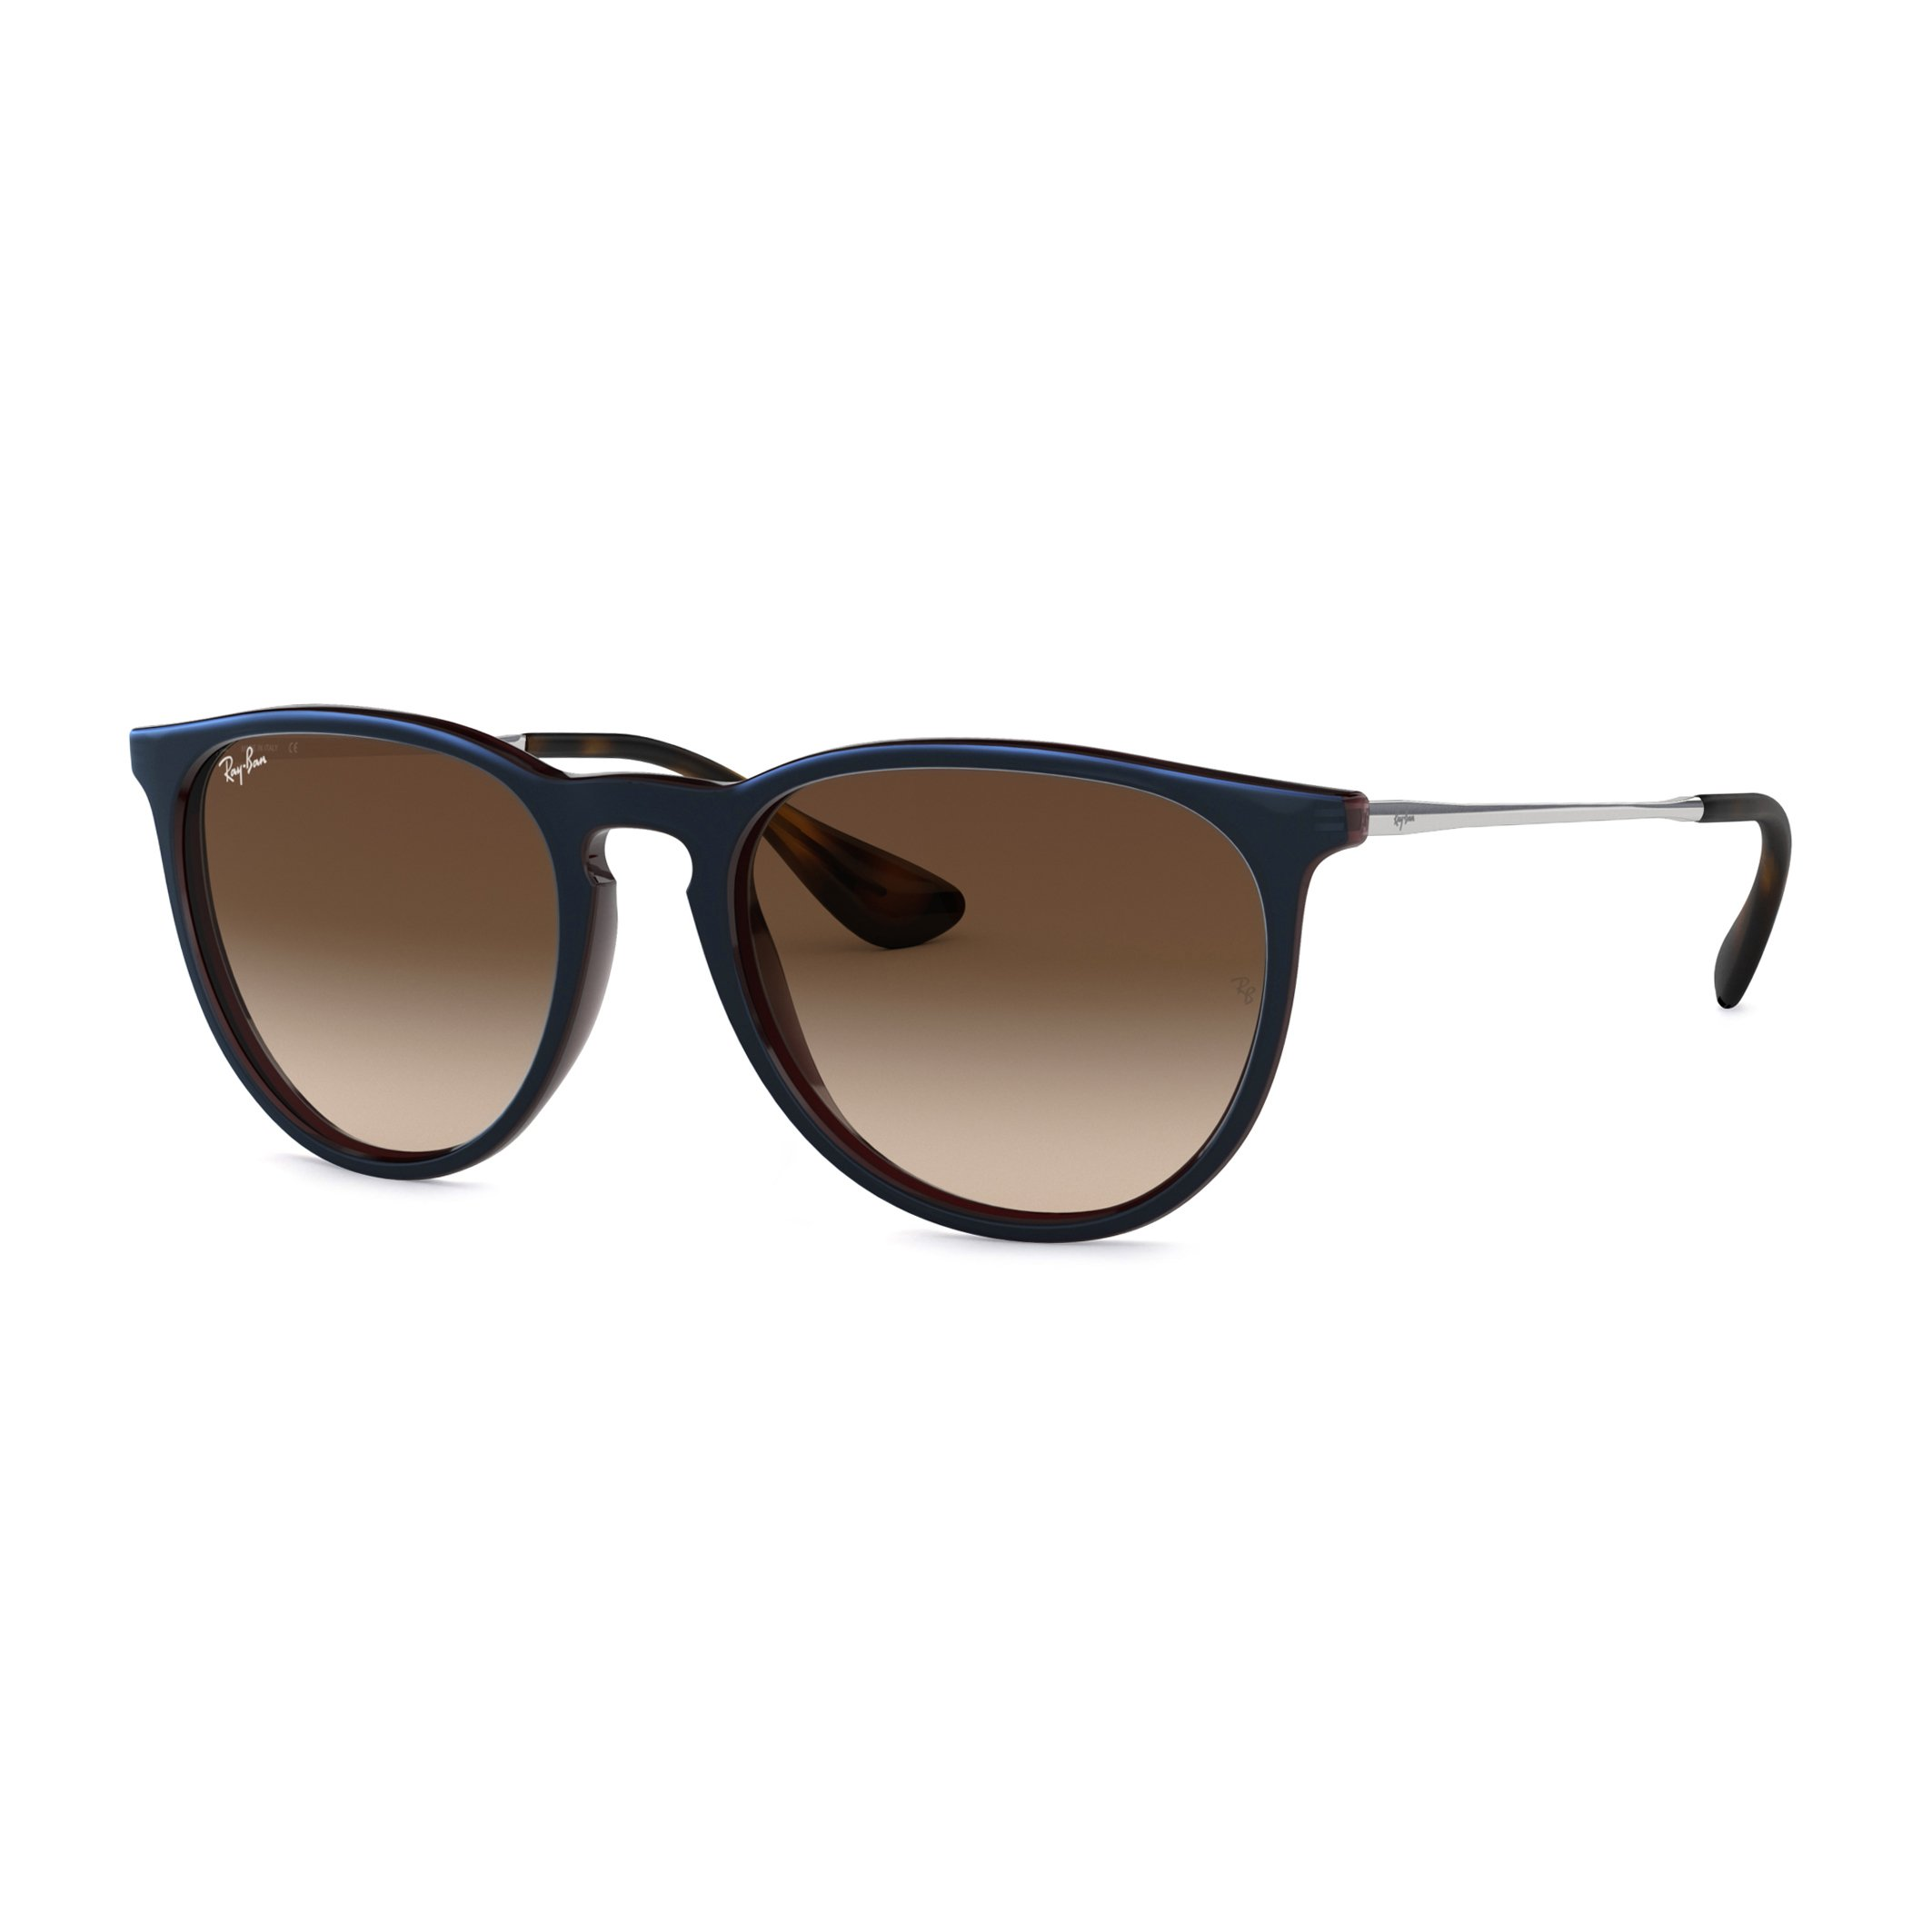 Ray-Ban Unisex Sunglasses Various Colours 0RB4171F - brown-2 NOSIZE